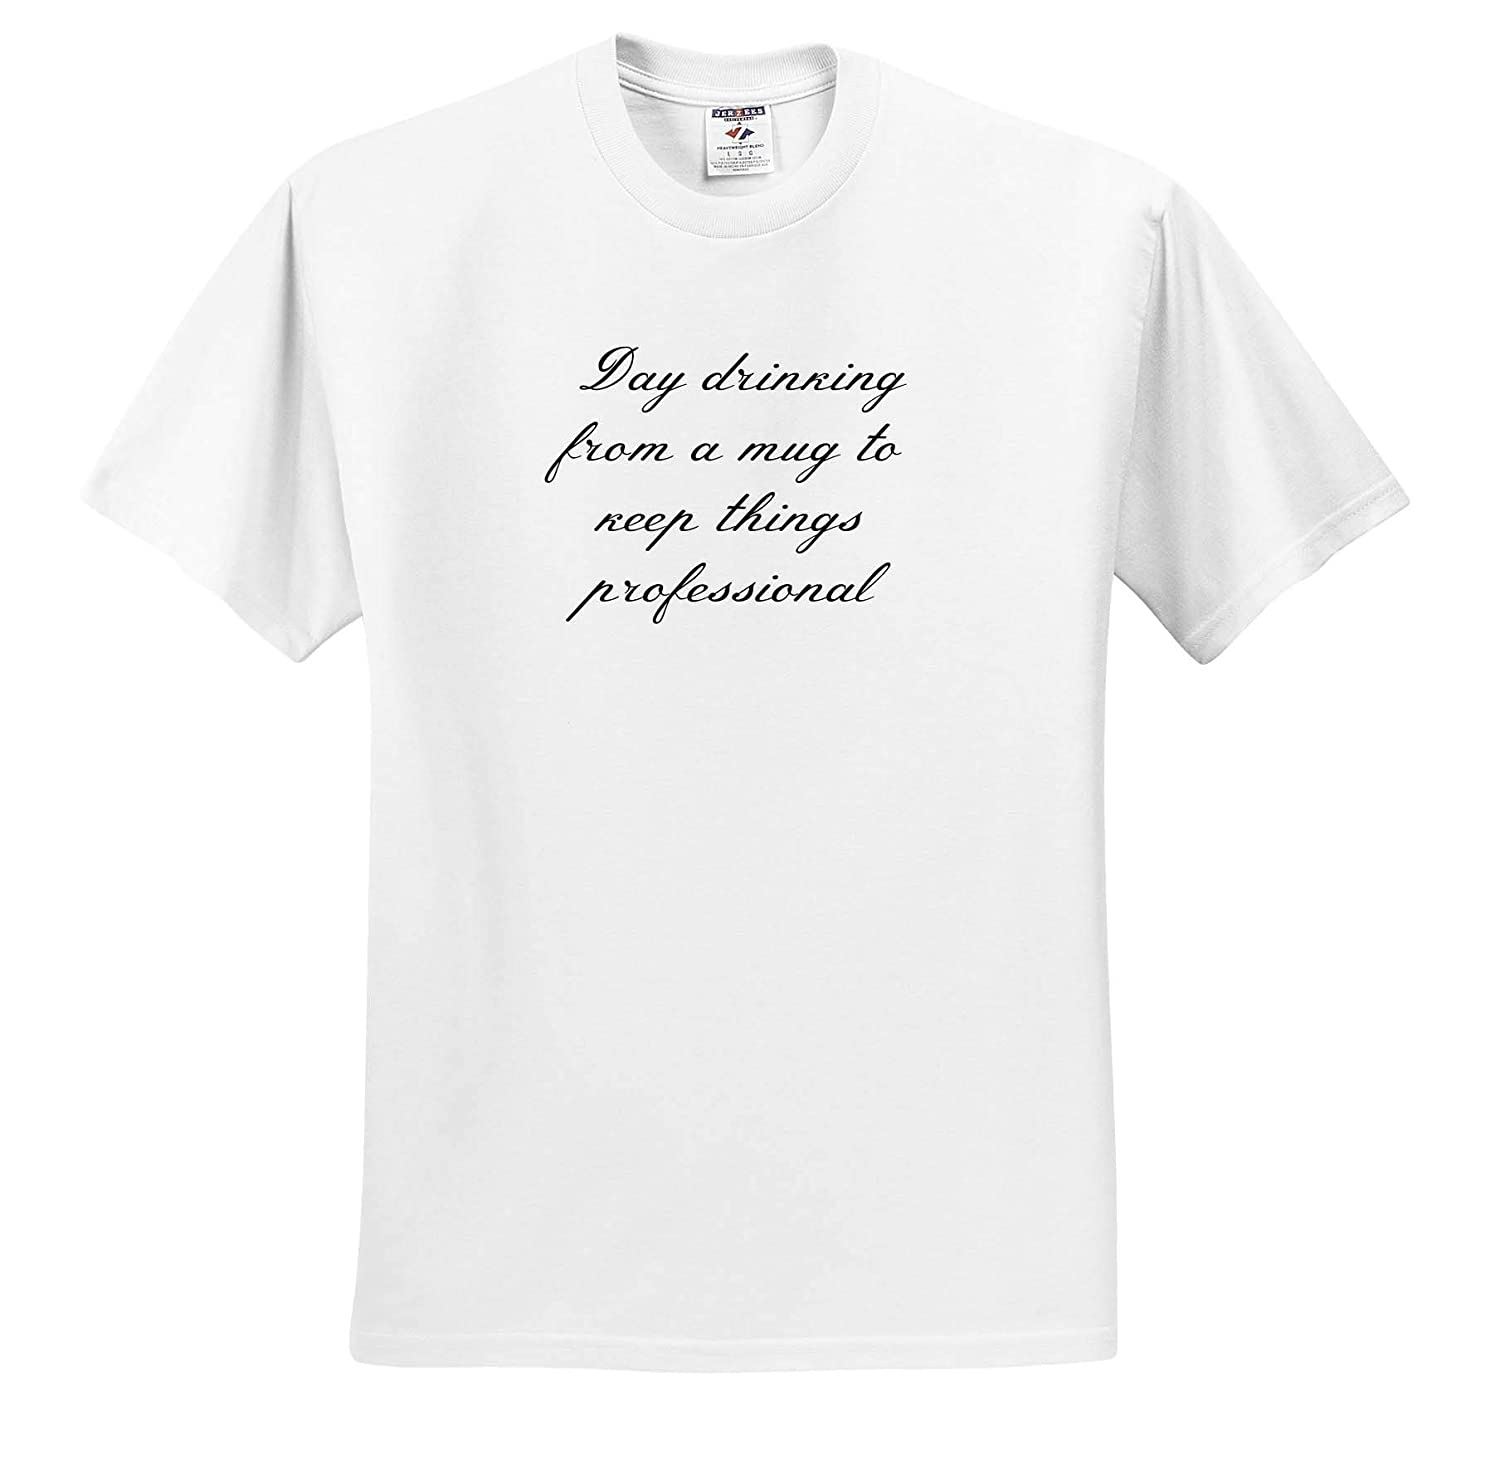 Adult T-Shirt XL Image of Day Drinking from A Mug to Keep Things Professional Quote 3dRose Gabriella-Quote ts/_317787